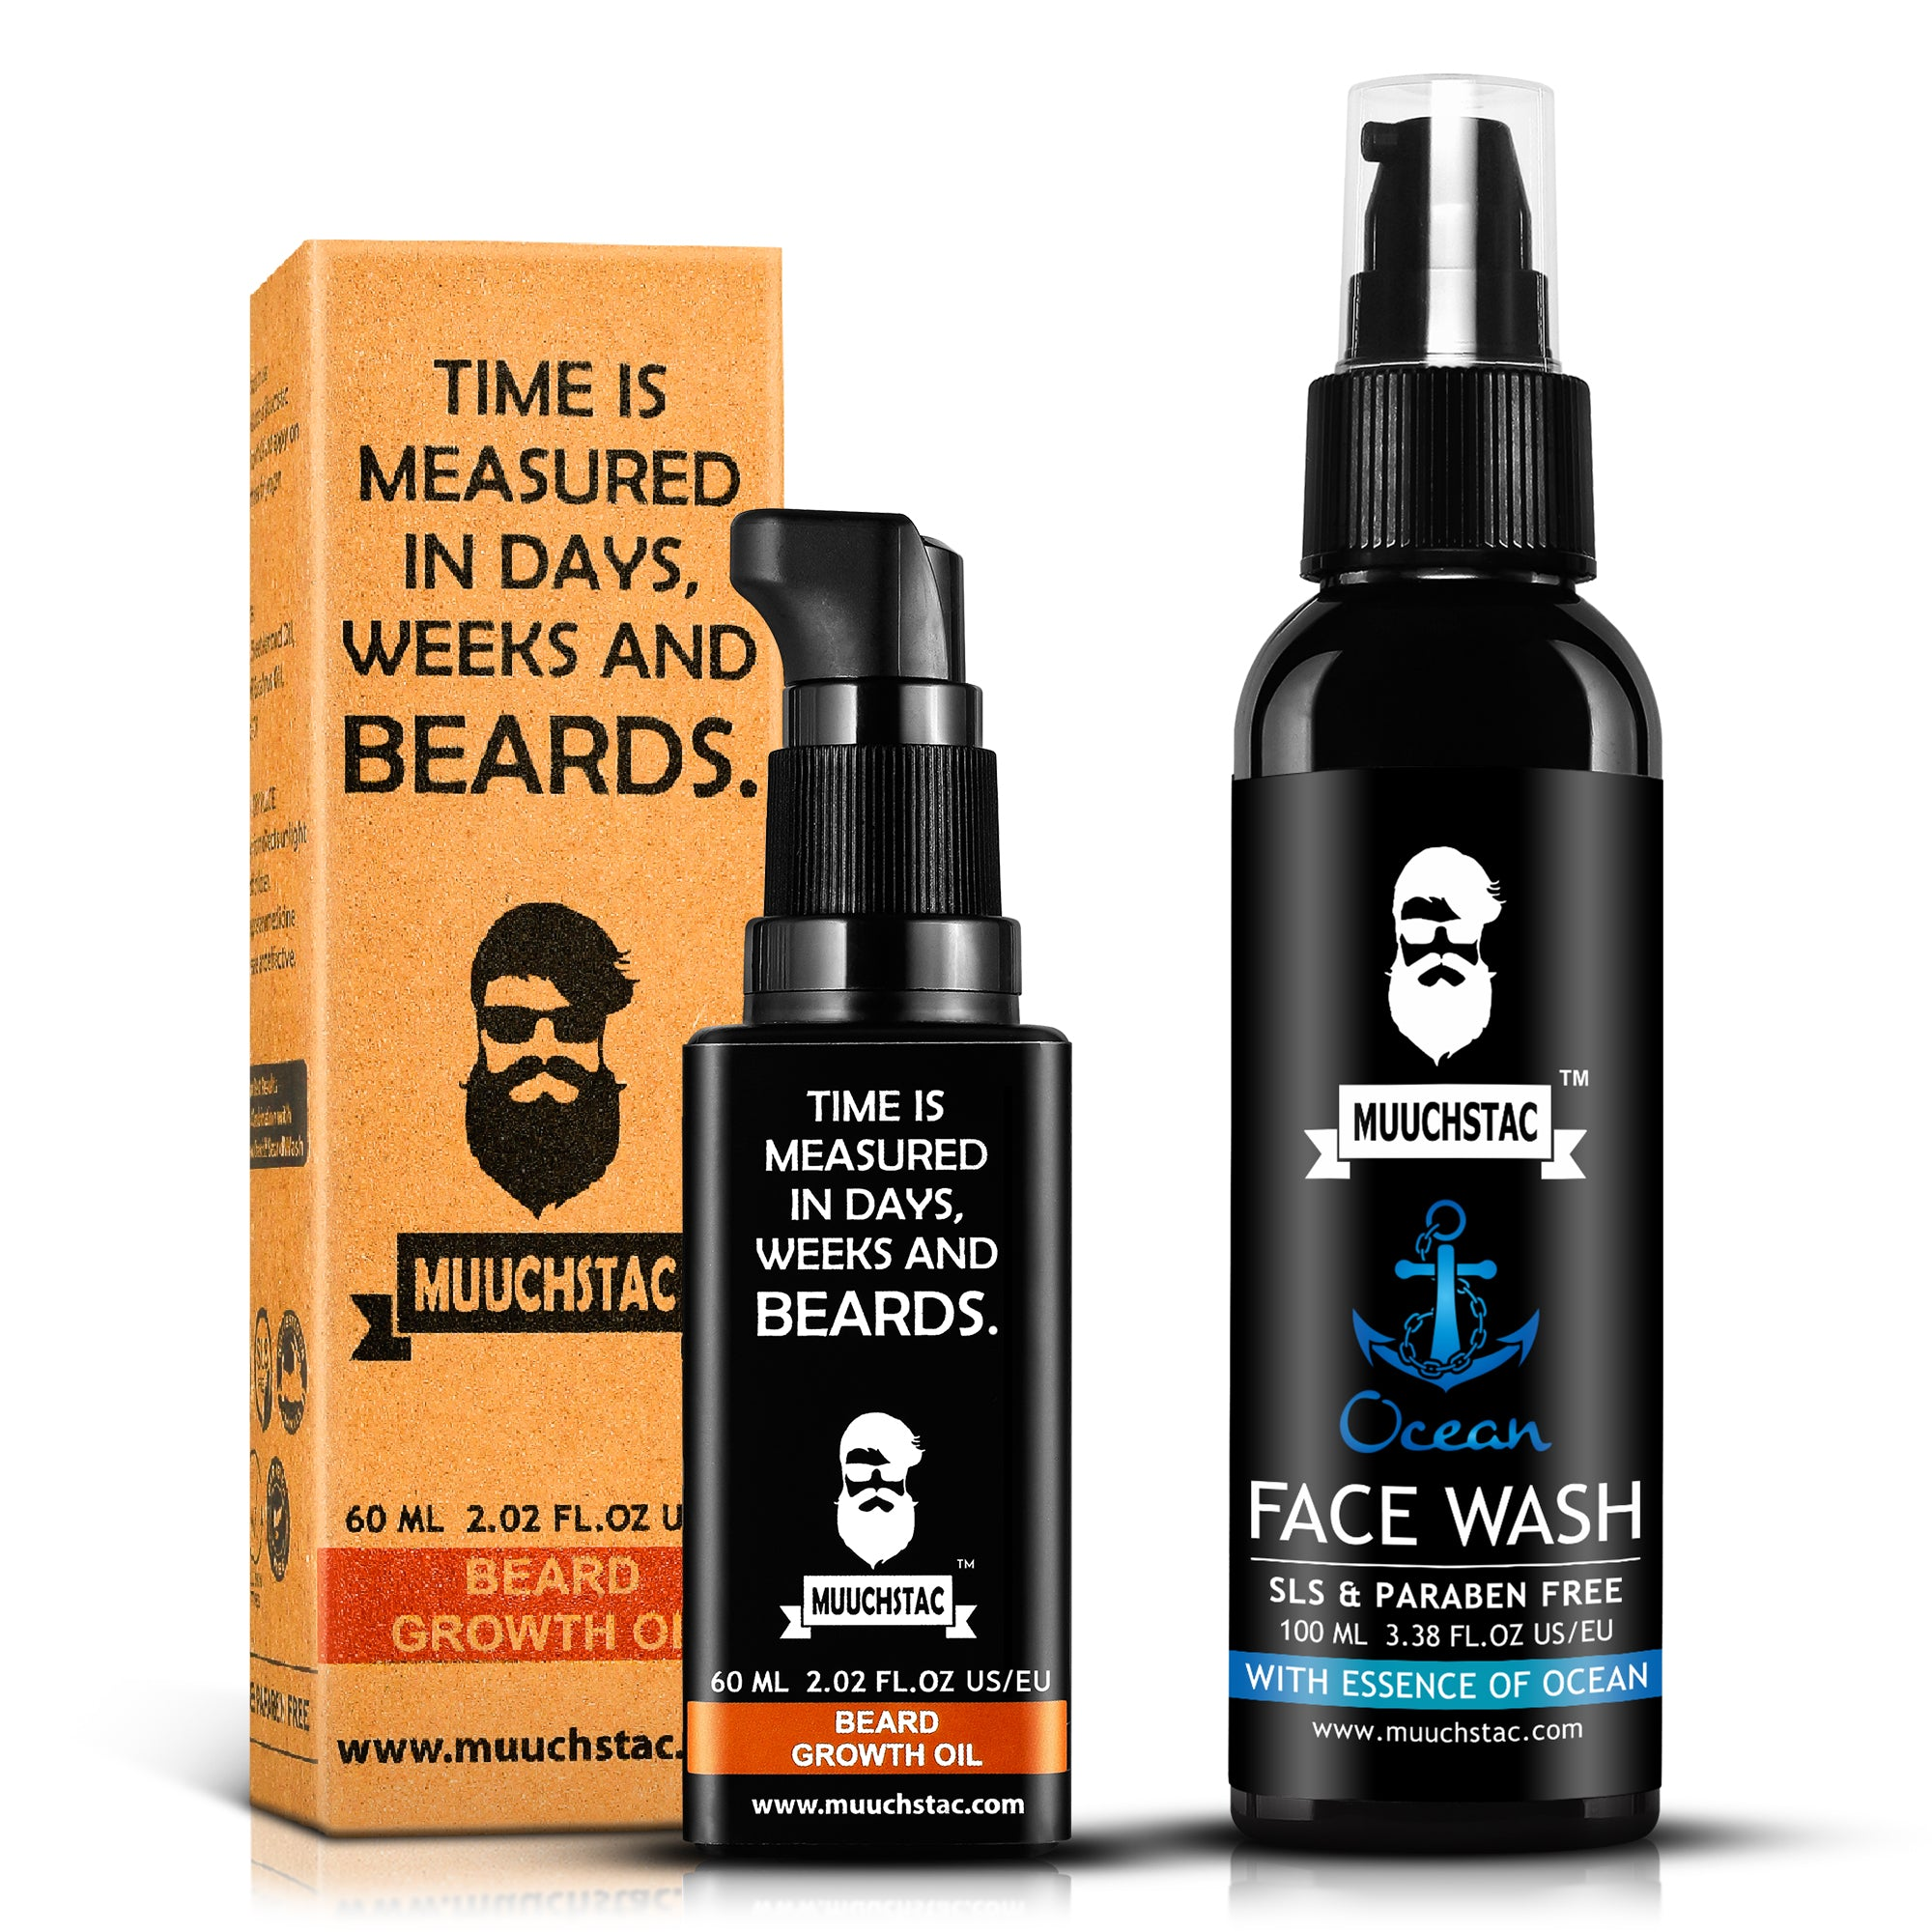 Muuchstac Beard Growth Oil and Ocean Face Wash (160ml) - Beard & Face Care Kit  - Pack of 2